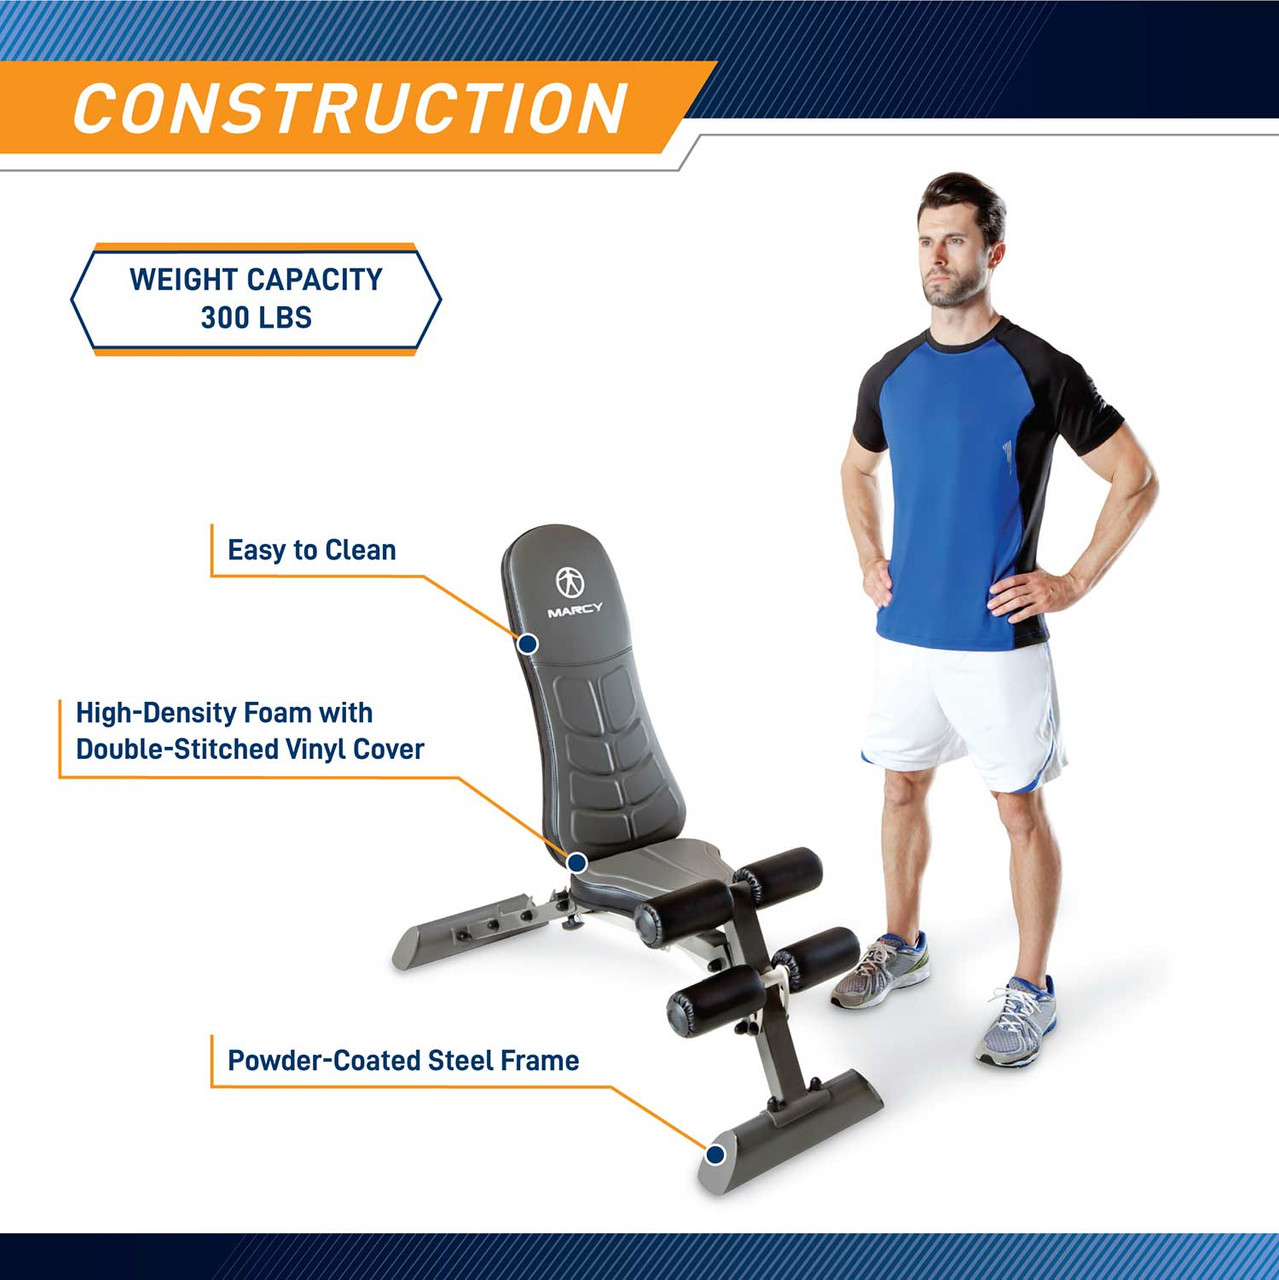 The Marcy Deluxe Utility Bench SB-10100 by Marcy adds variety to your workout with incline, decline, flat and Military positions